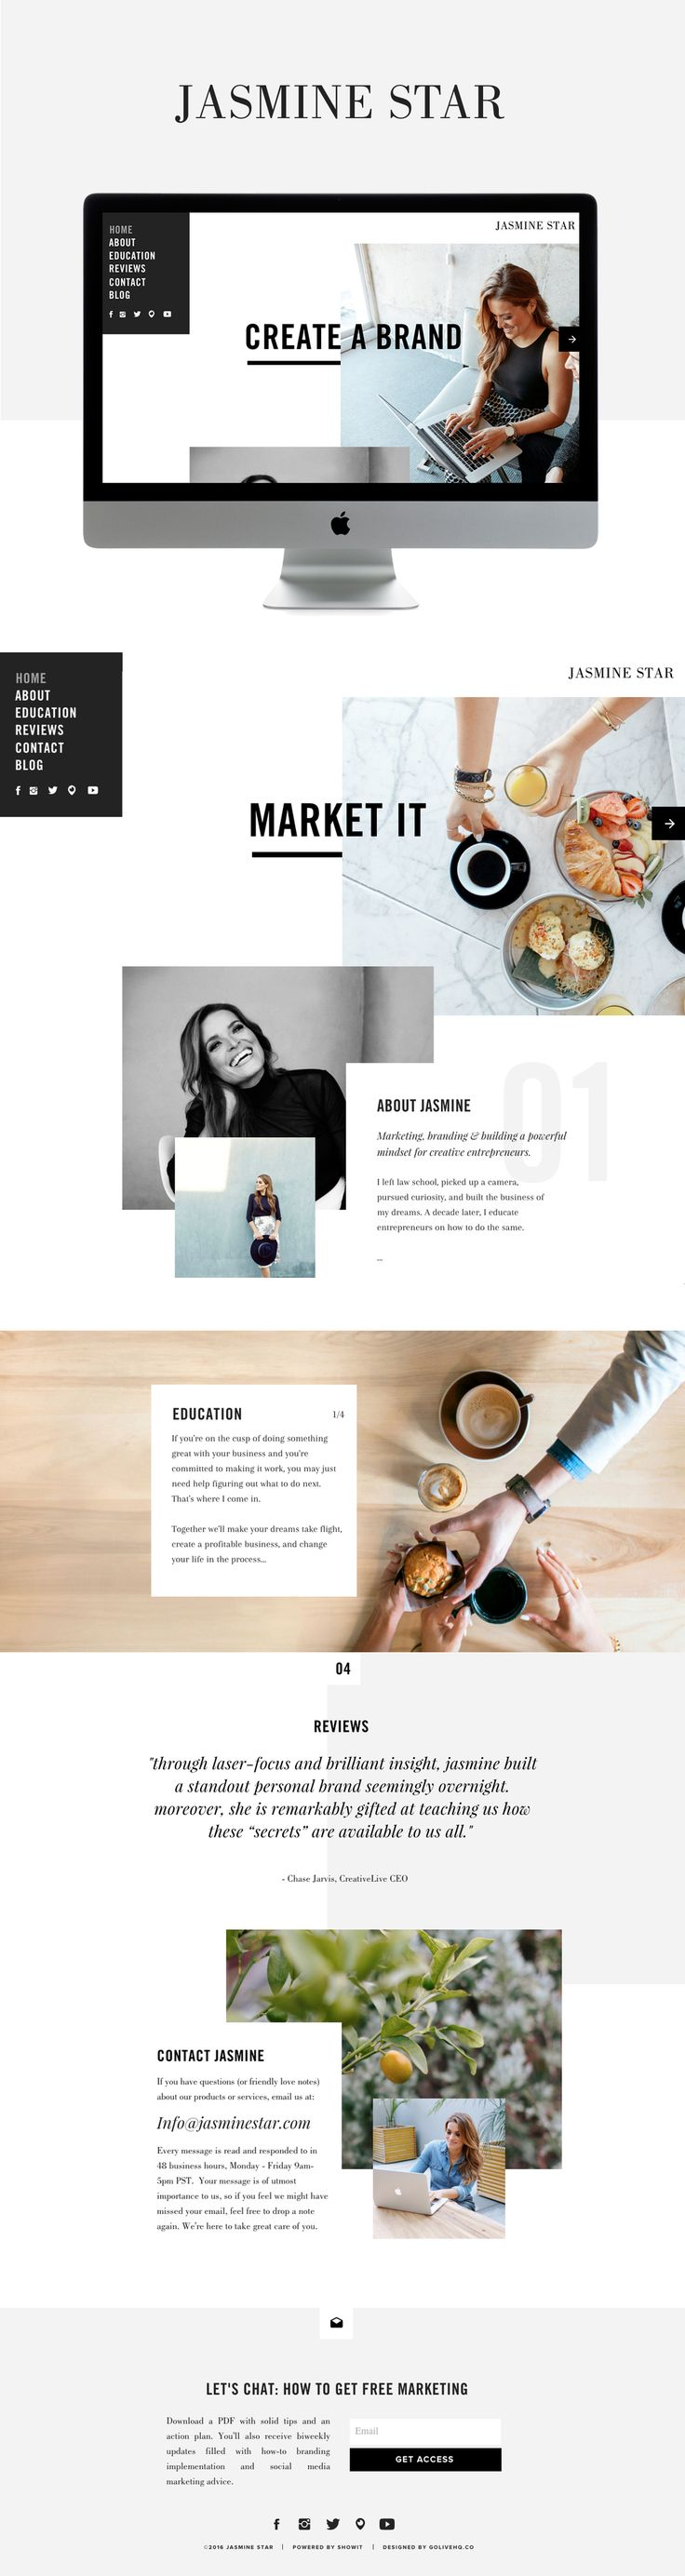 jasmine star website - inspiration  |  by golivehq.co                                                                                                                                                                                 More